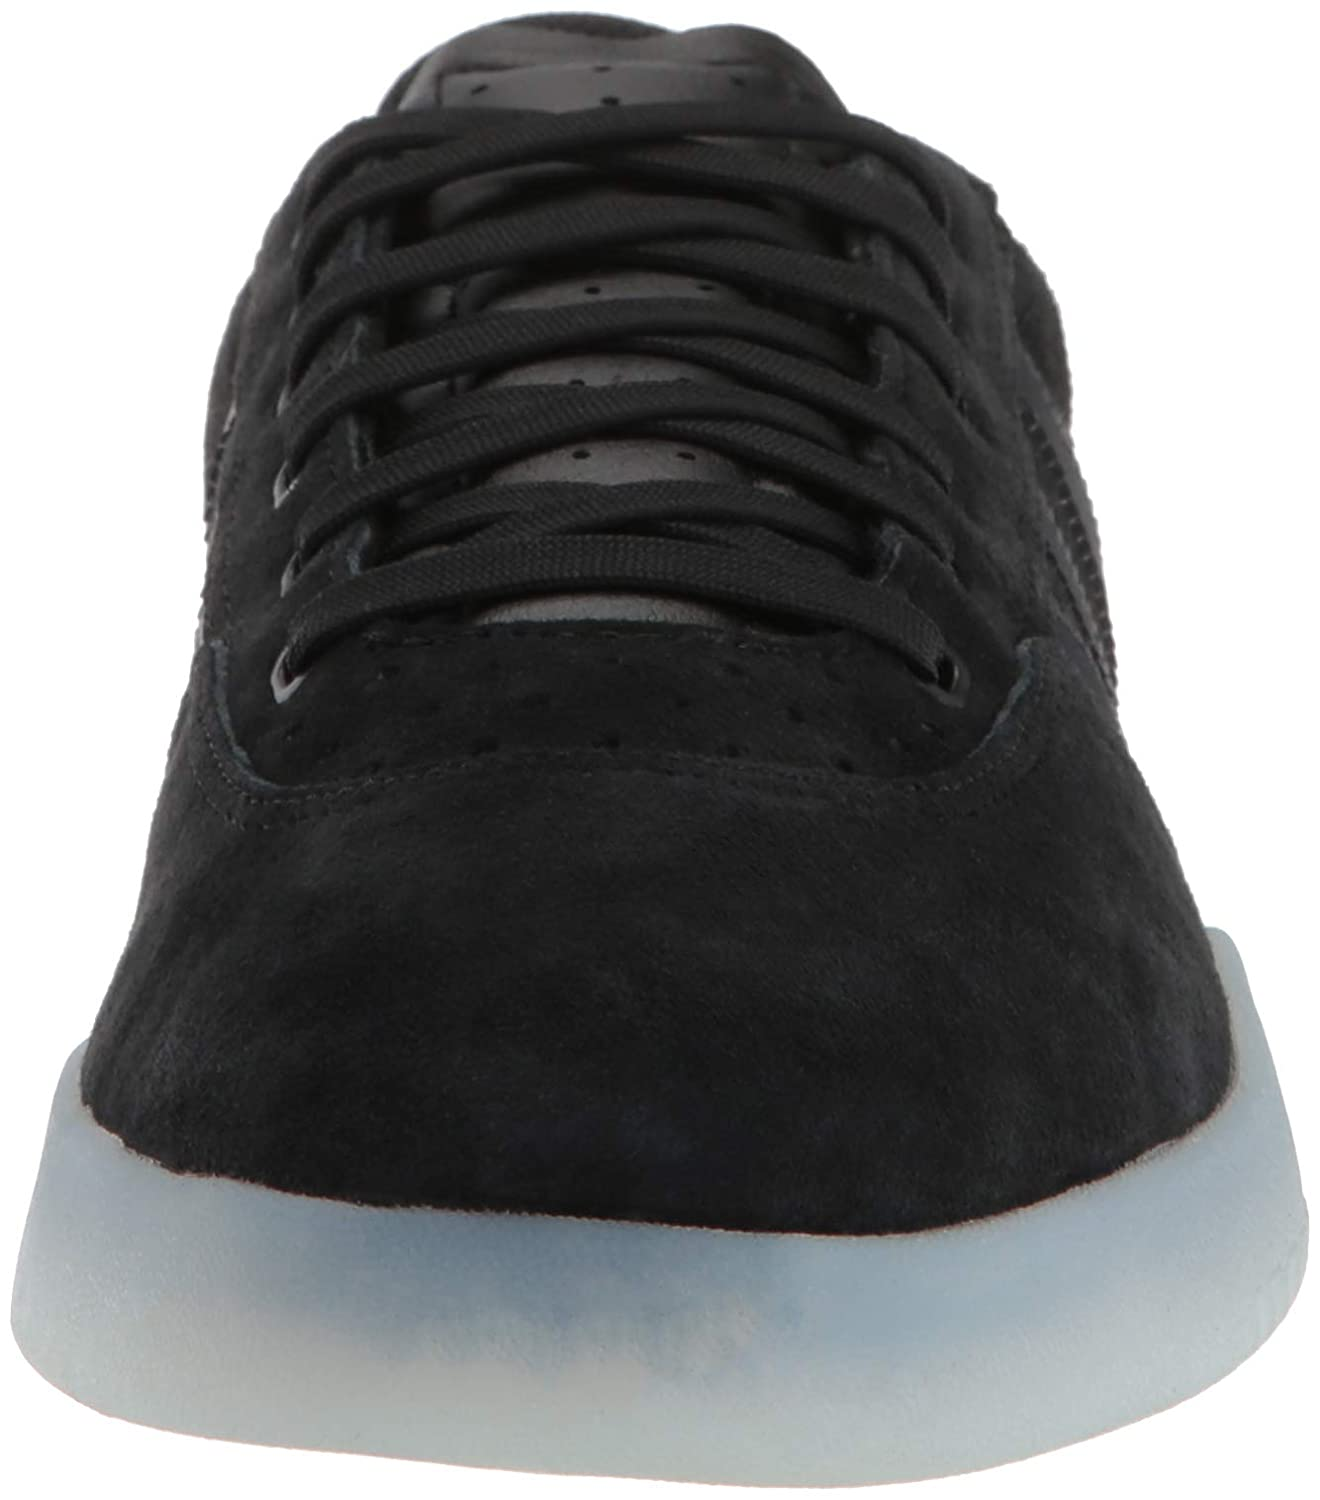 size 40 100a4 81f75 adidas Originals City Cup Herren Amazon.de Schuhe  Handtasch